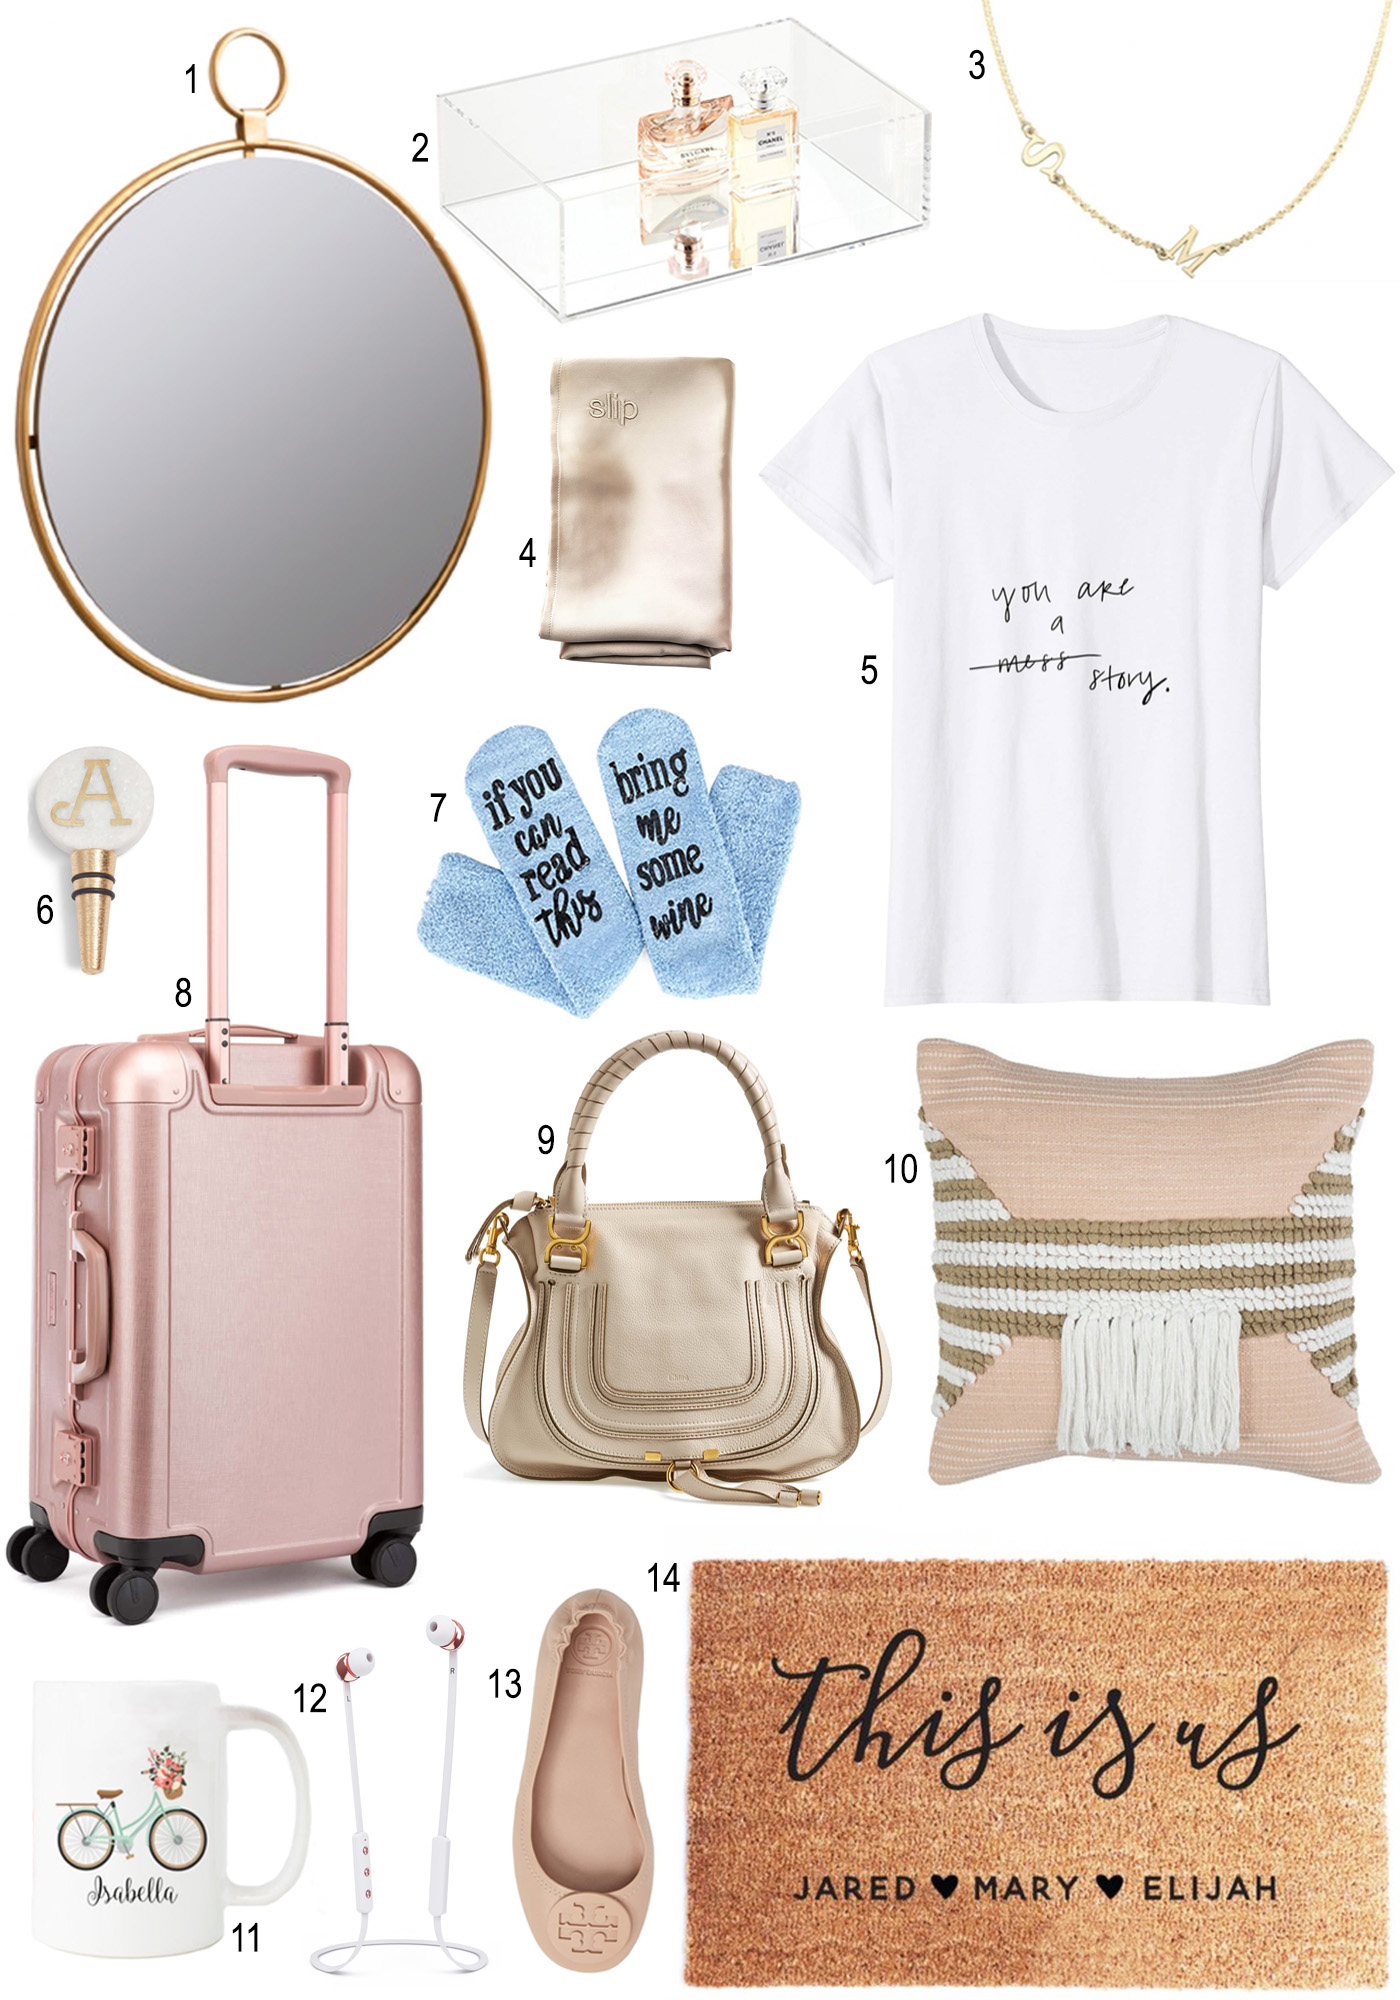 Mash Elle Gift Guide 2018 | Christmas Gifts | Holiday Gift Ideas | gold mirror | home decor gifts